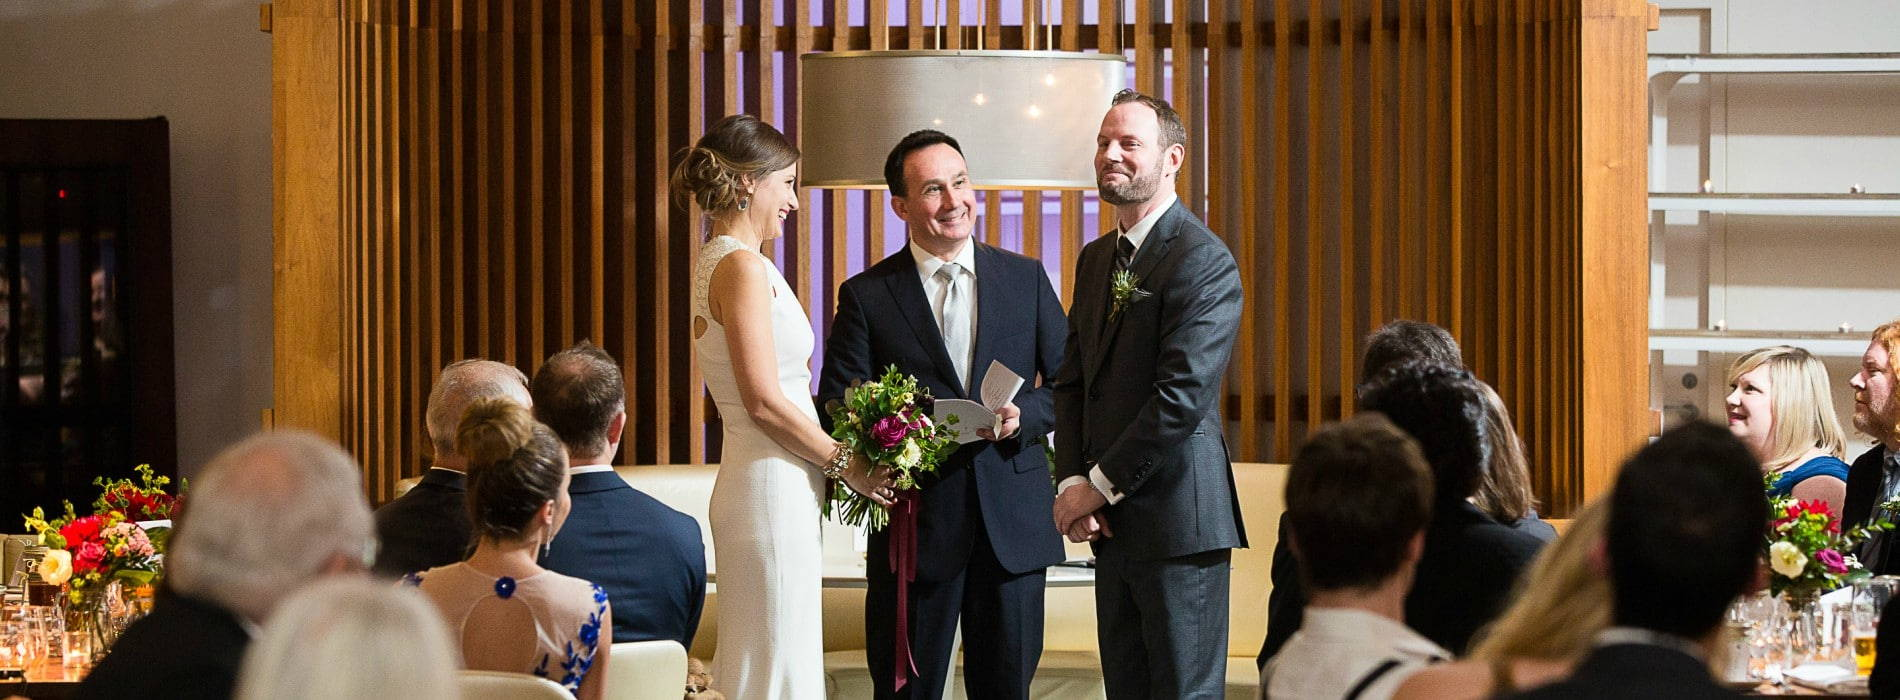 Hero image for Valerie and James' Intimate Wedding at Mildred's Temple Kitchen